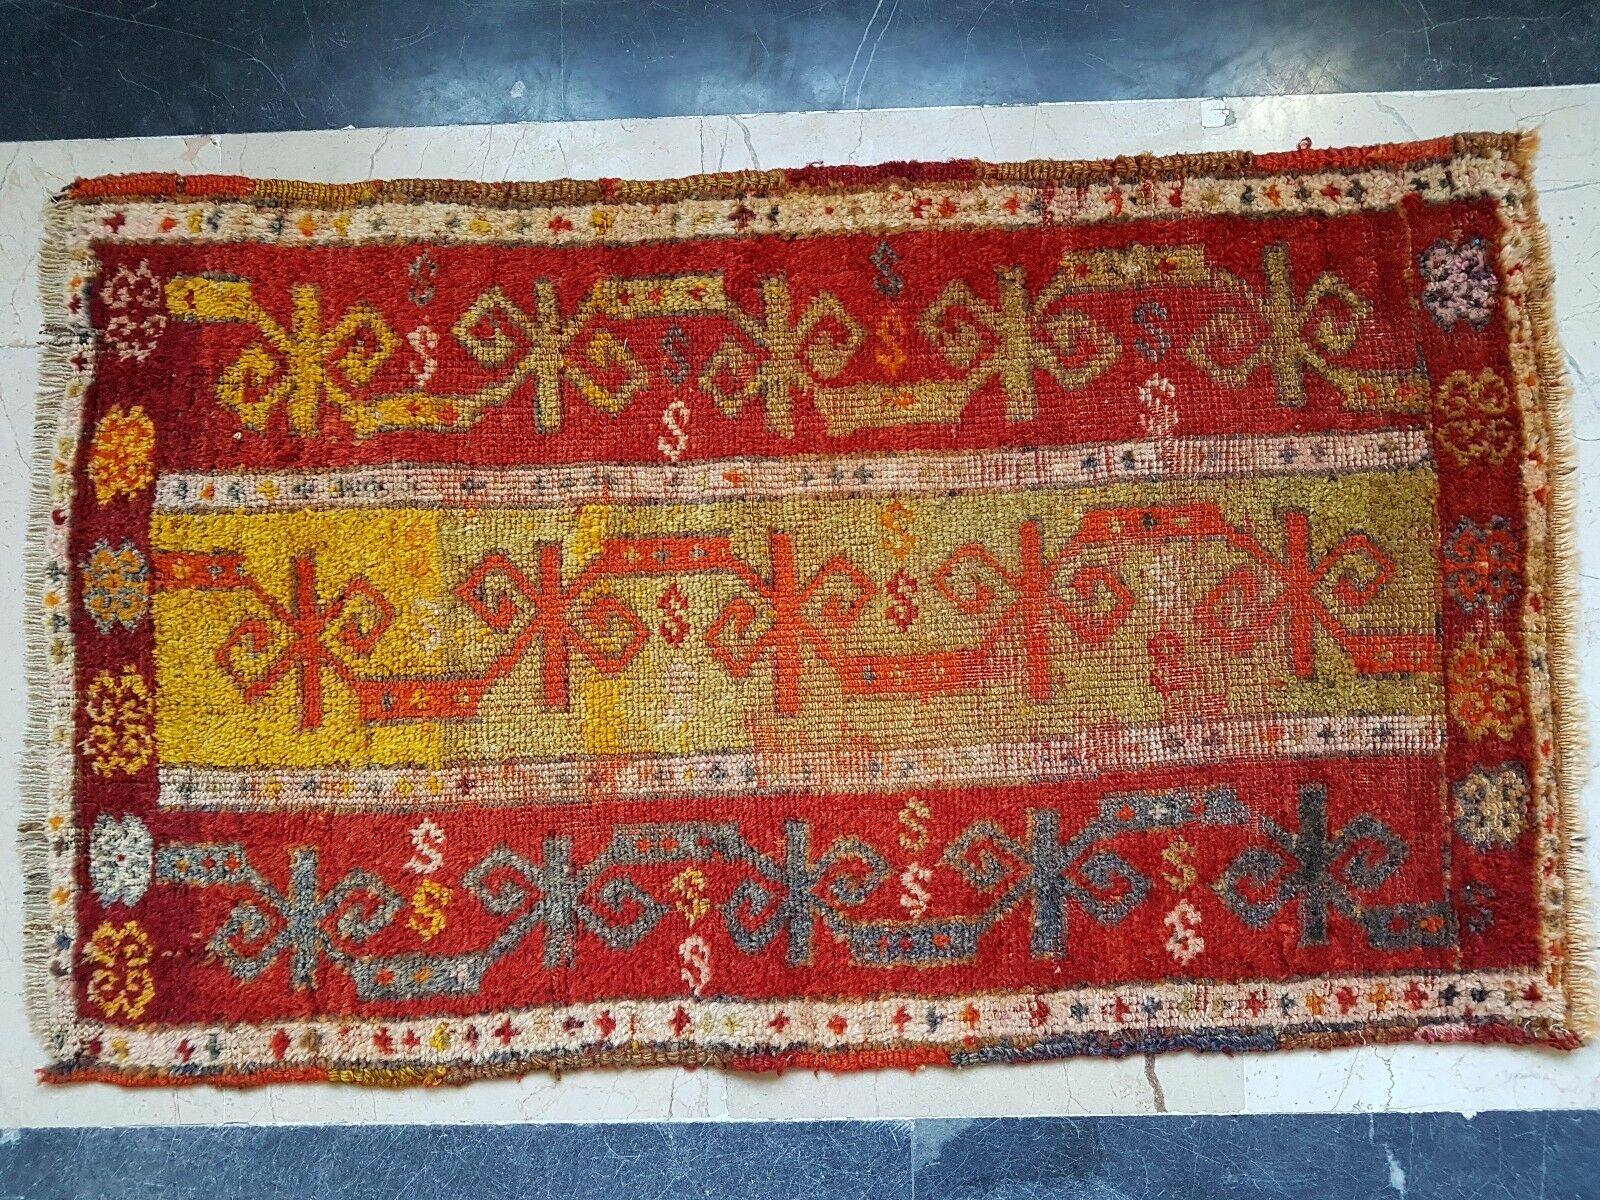 Handmade Handmade Handmade Antique Collectible Anatolian Turkish Yastik Rug 1.8x3.1 ft. (56x95 cm) 0969d3